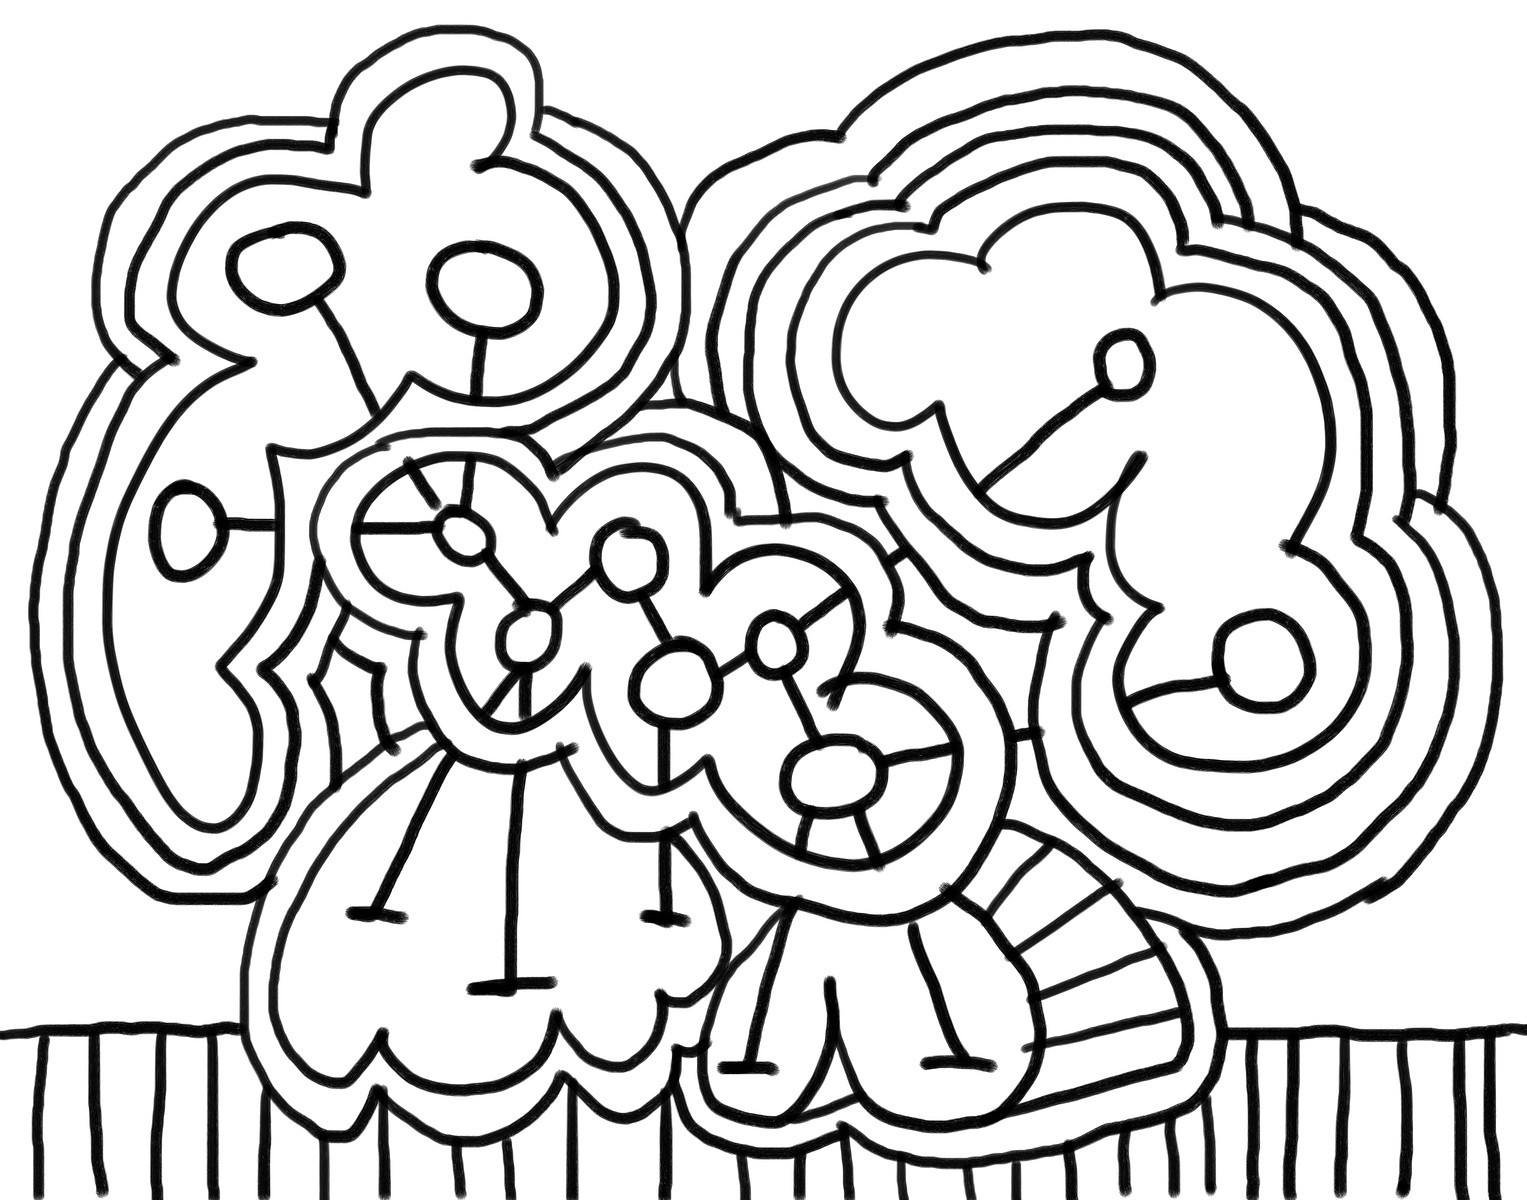 abstract coloring pages for kids - Abstract Coloring Pages